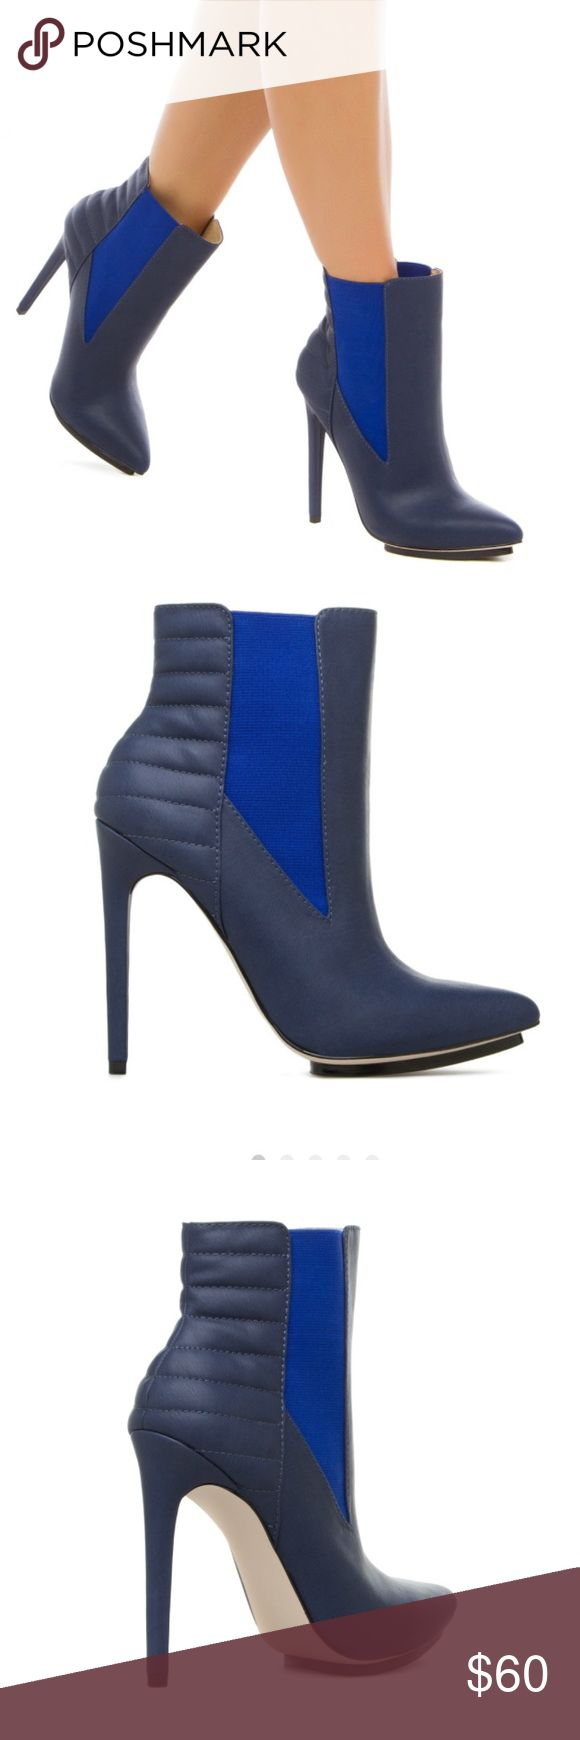 Gwen Stefani cute blue booties! Adorable blue booties. New in box. Navy. Size 7 GX by Gwen Stefani Shoes Ankle Boots & Booties